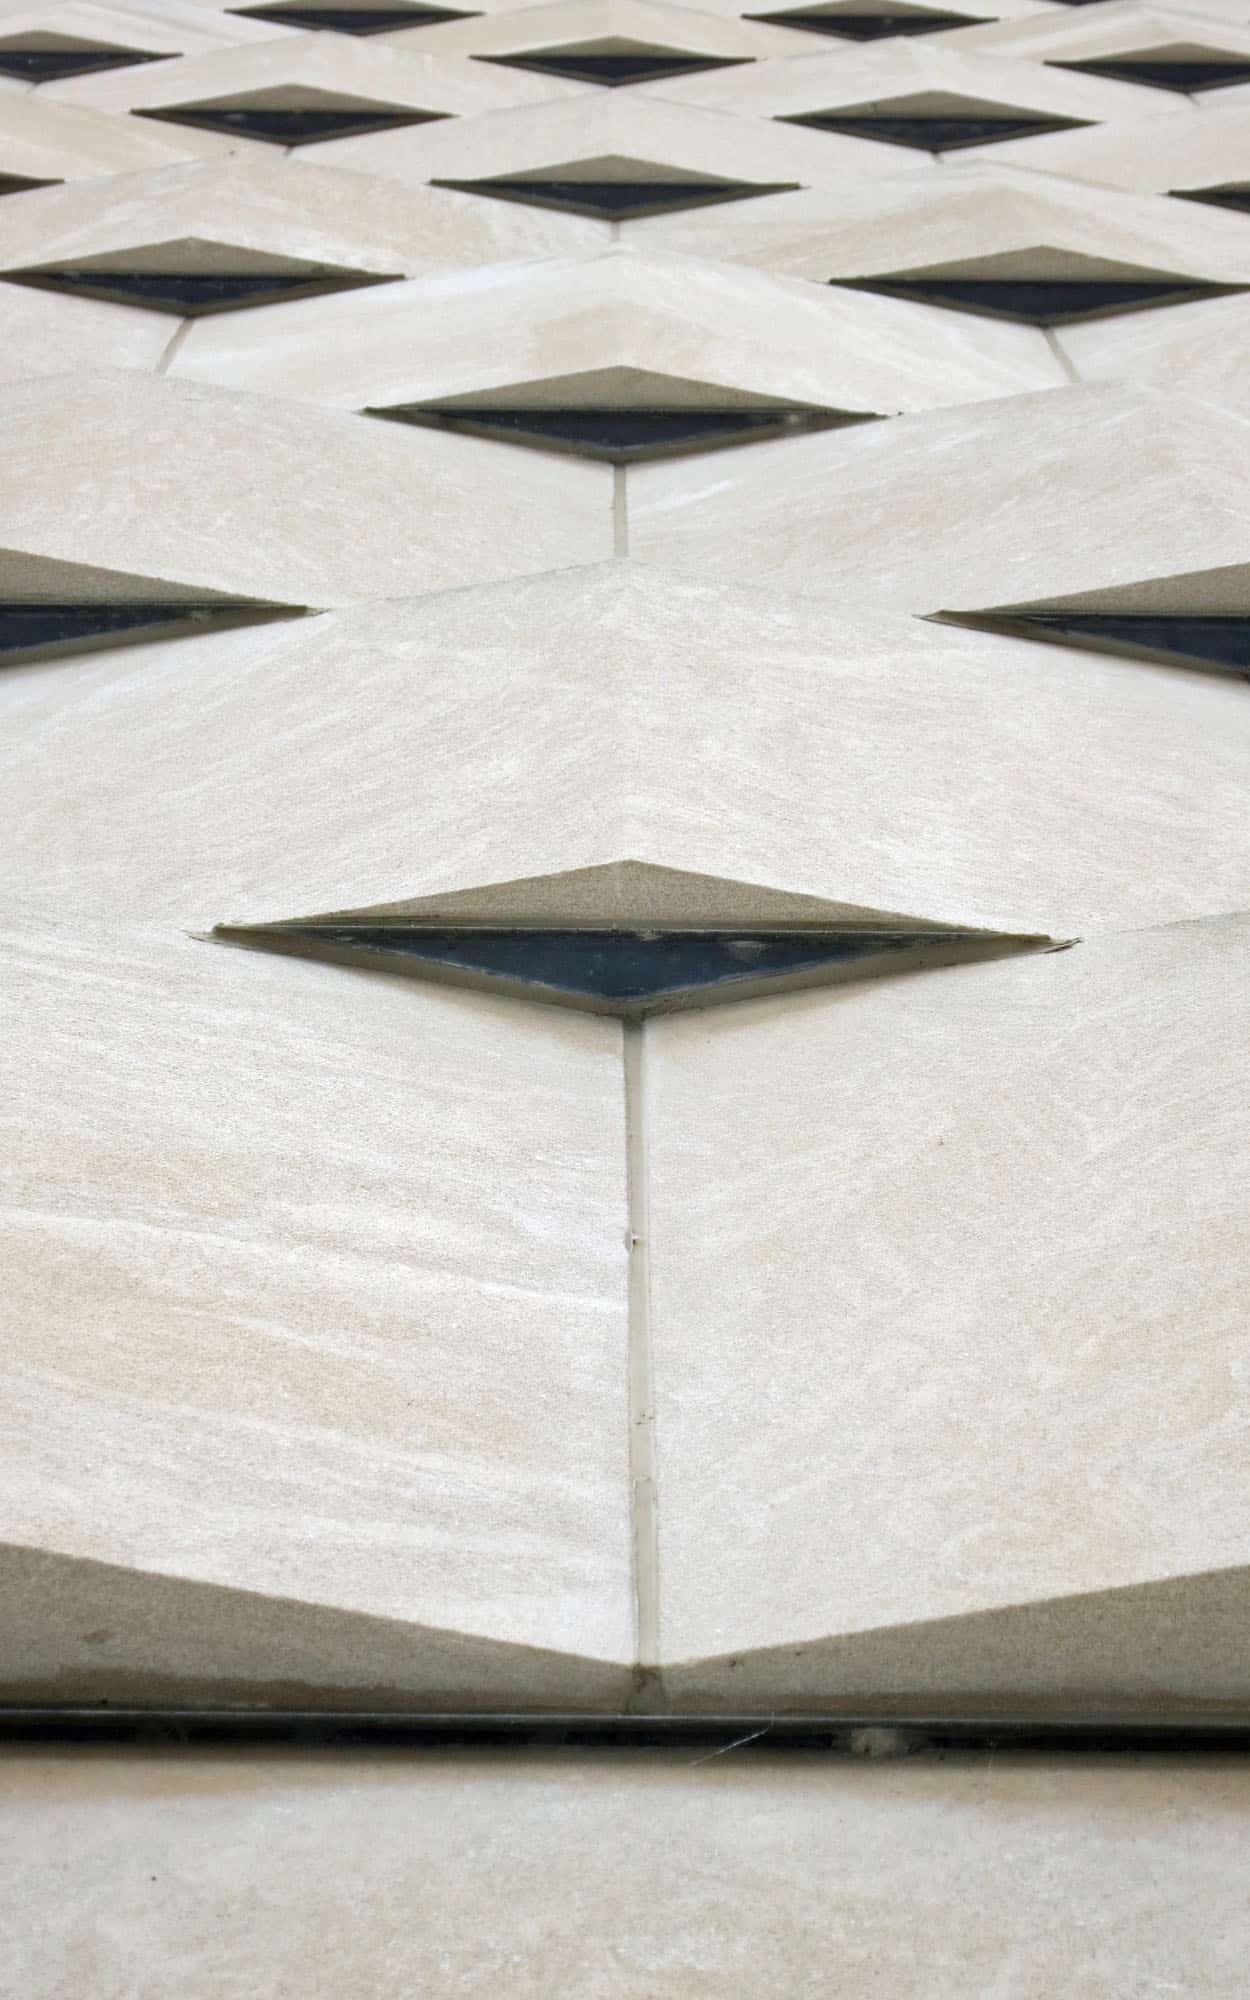 The limestone cladding of the justice building with its subtle basket-weave effect